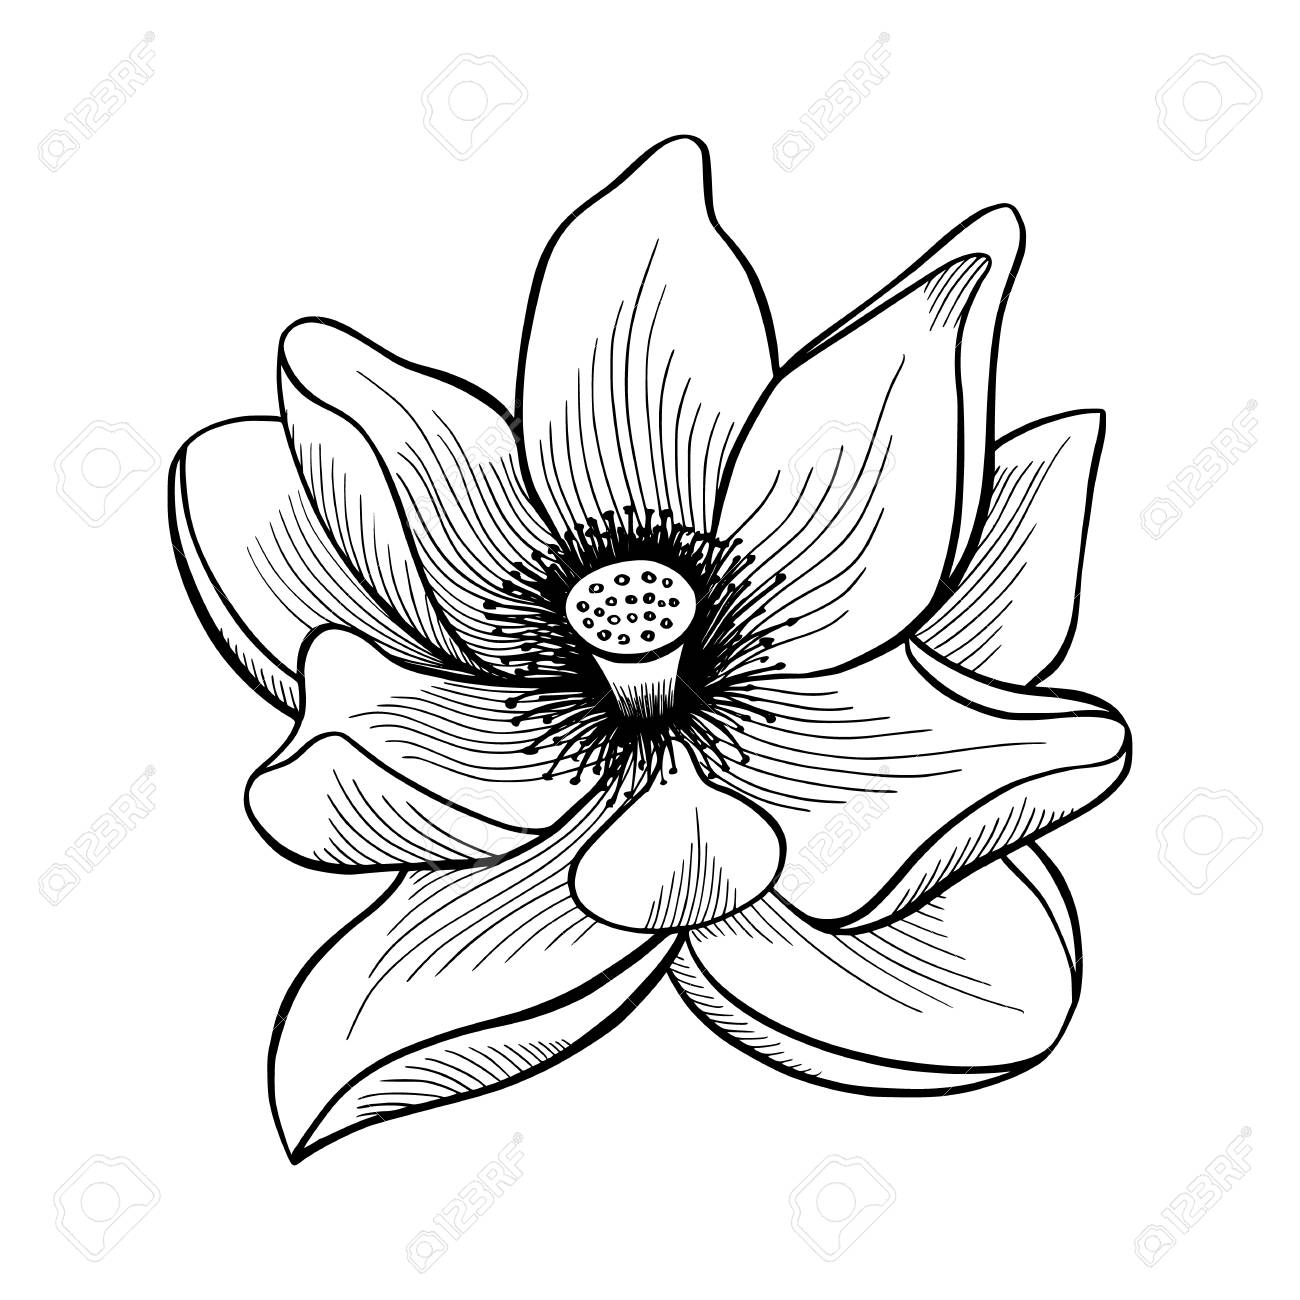 Hand Drawn Sketch Of Blooming Lotus Flower Royalty Free Cliparts